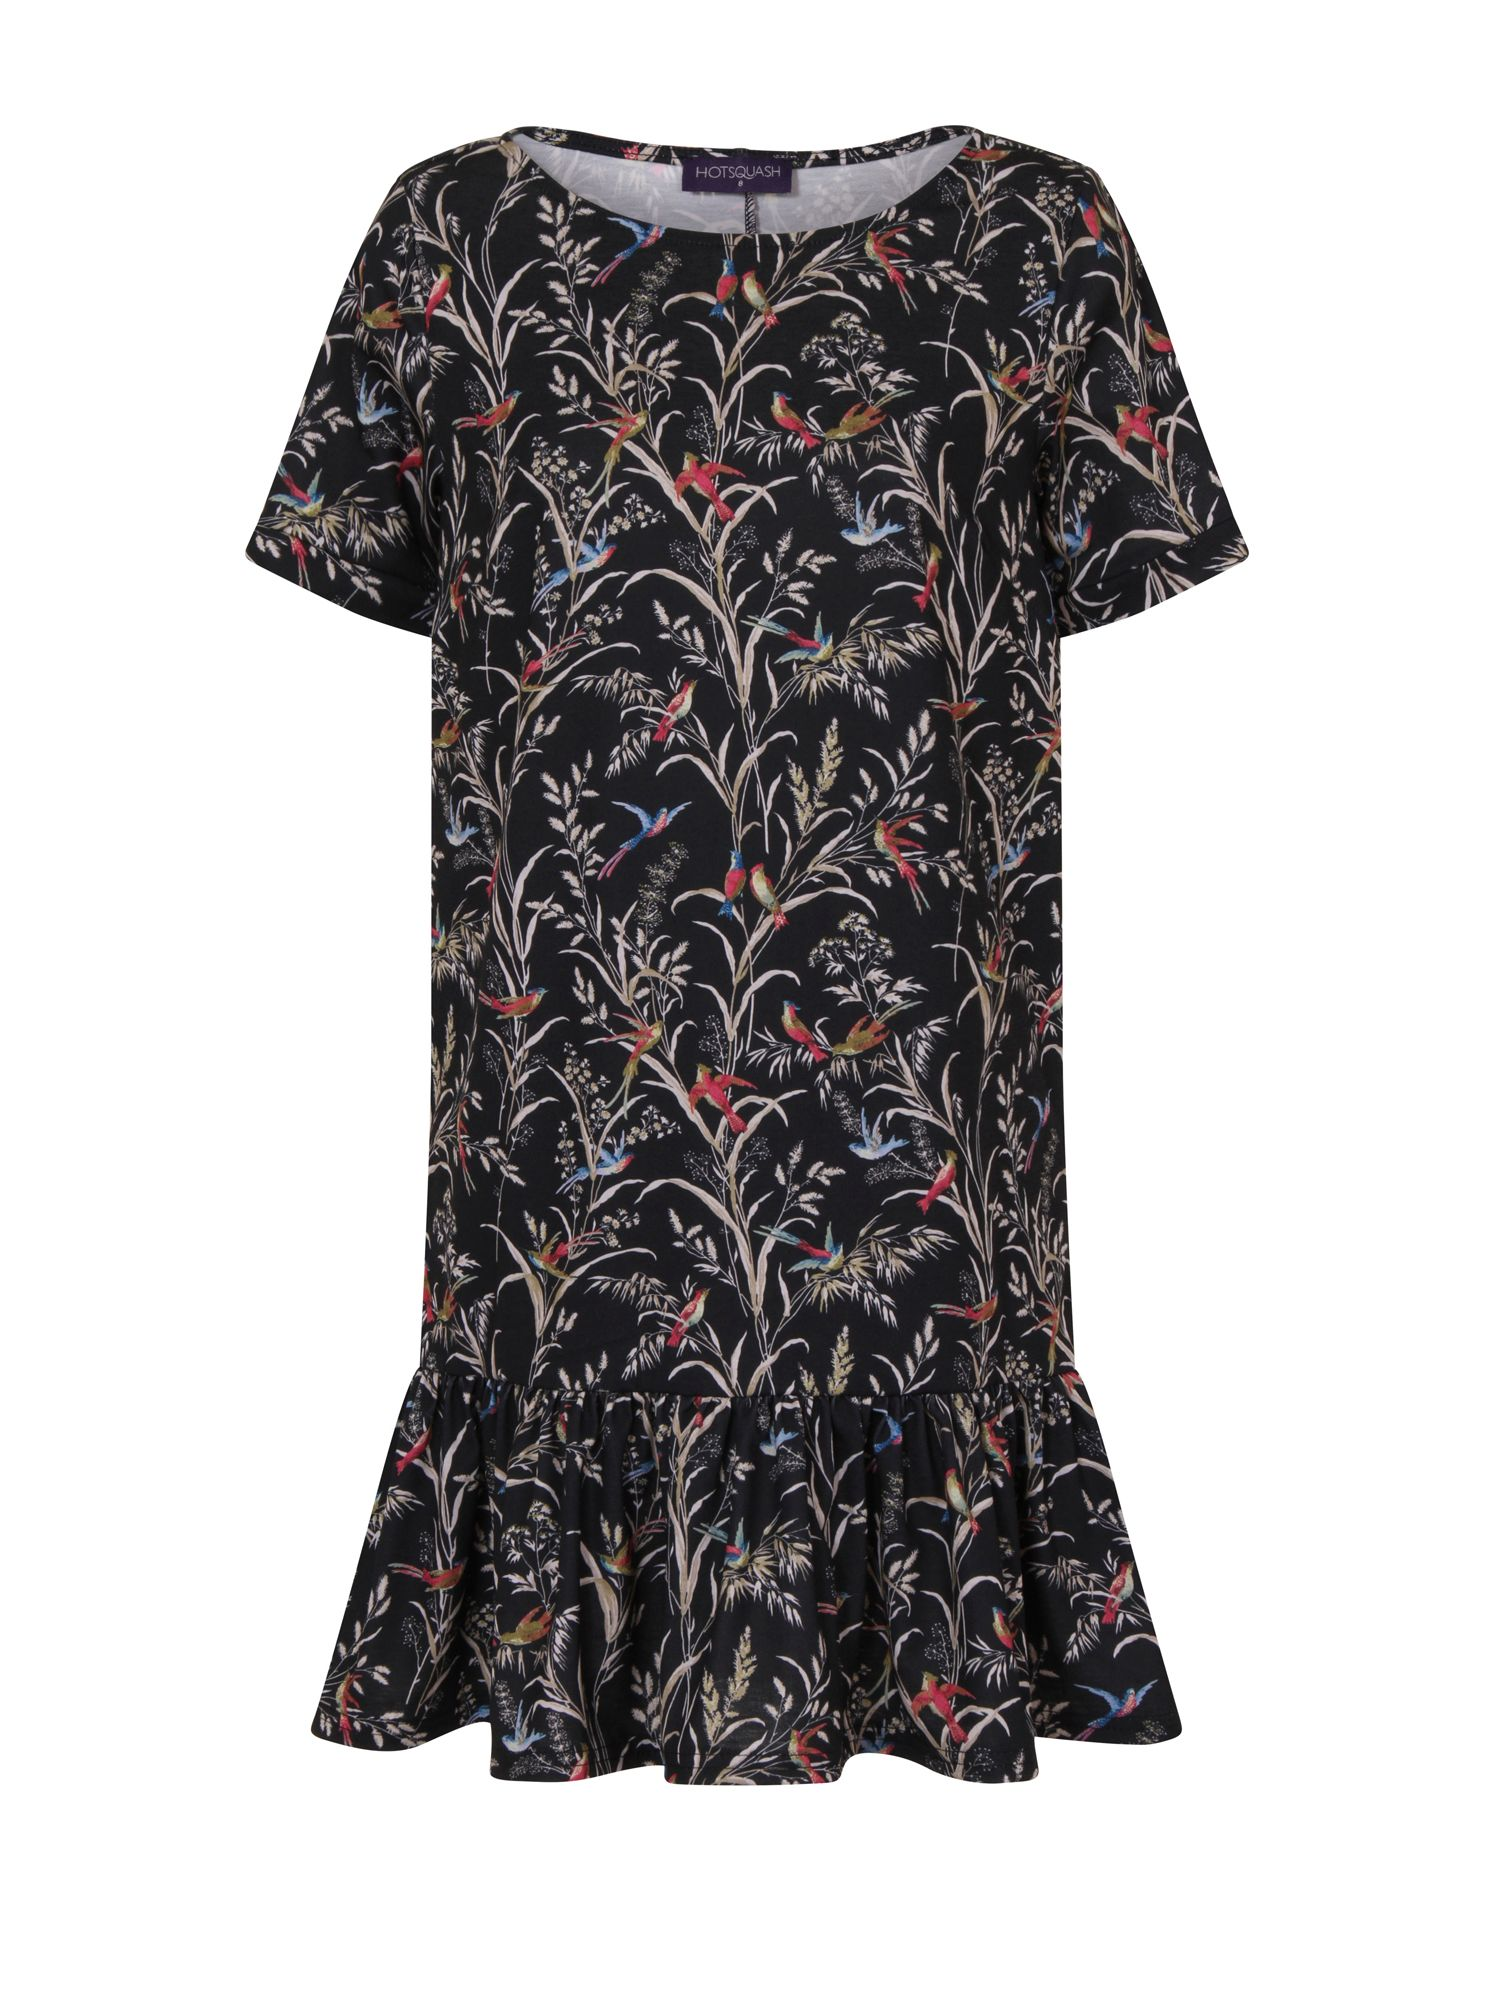 HotSquash Floral Drop Waist Dress, Black